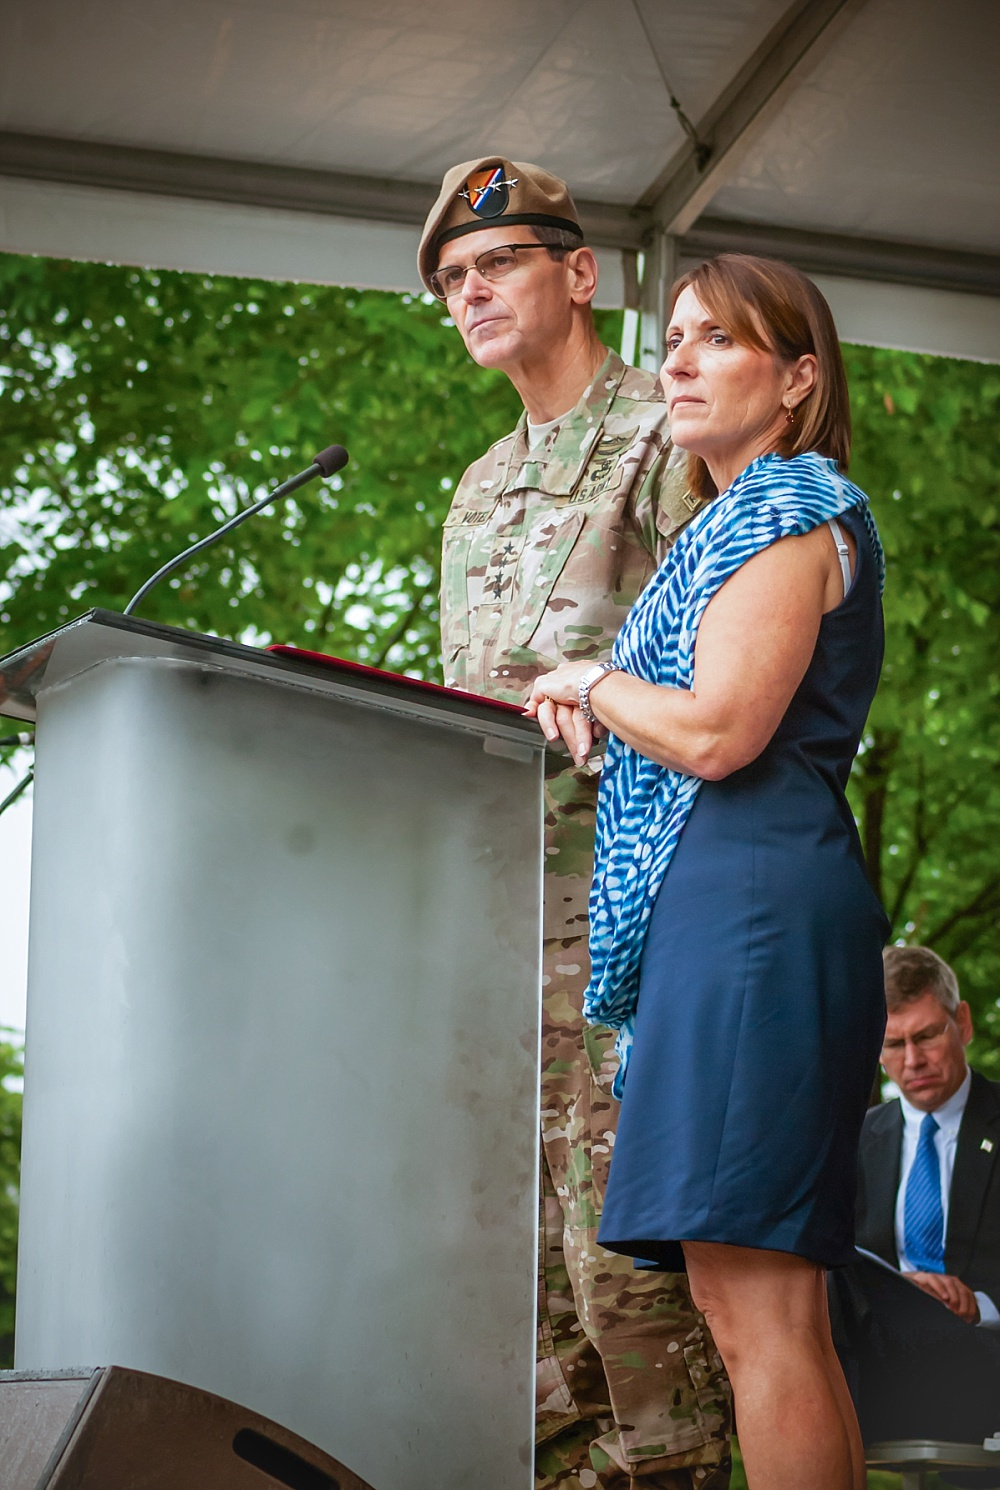 GENERAL JOSEPH VOTEL (AND WIFE MICHELLE), COMMANDING GENERAL, U.S. SPECIAL OPERATIONS